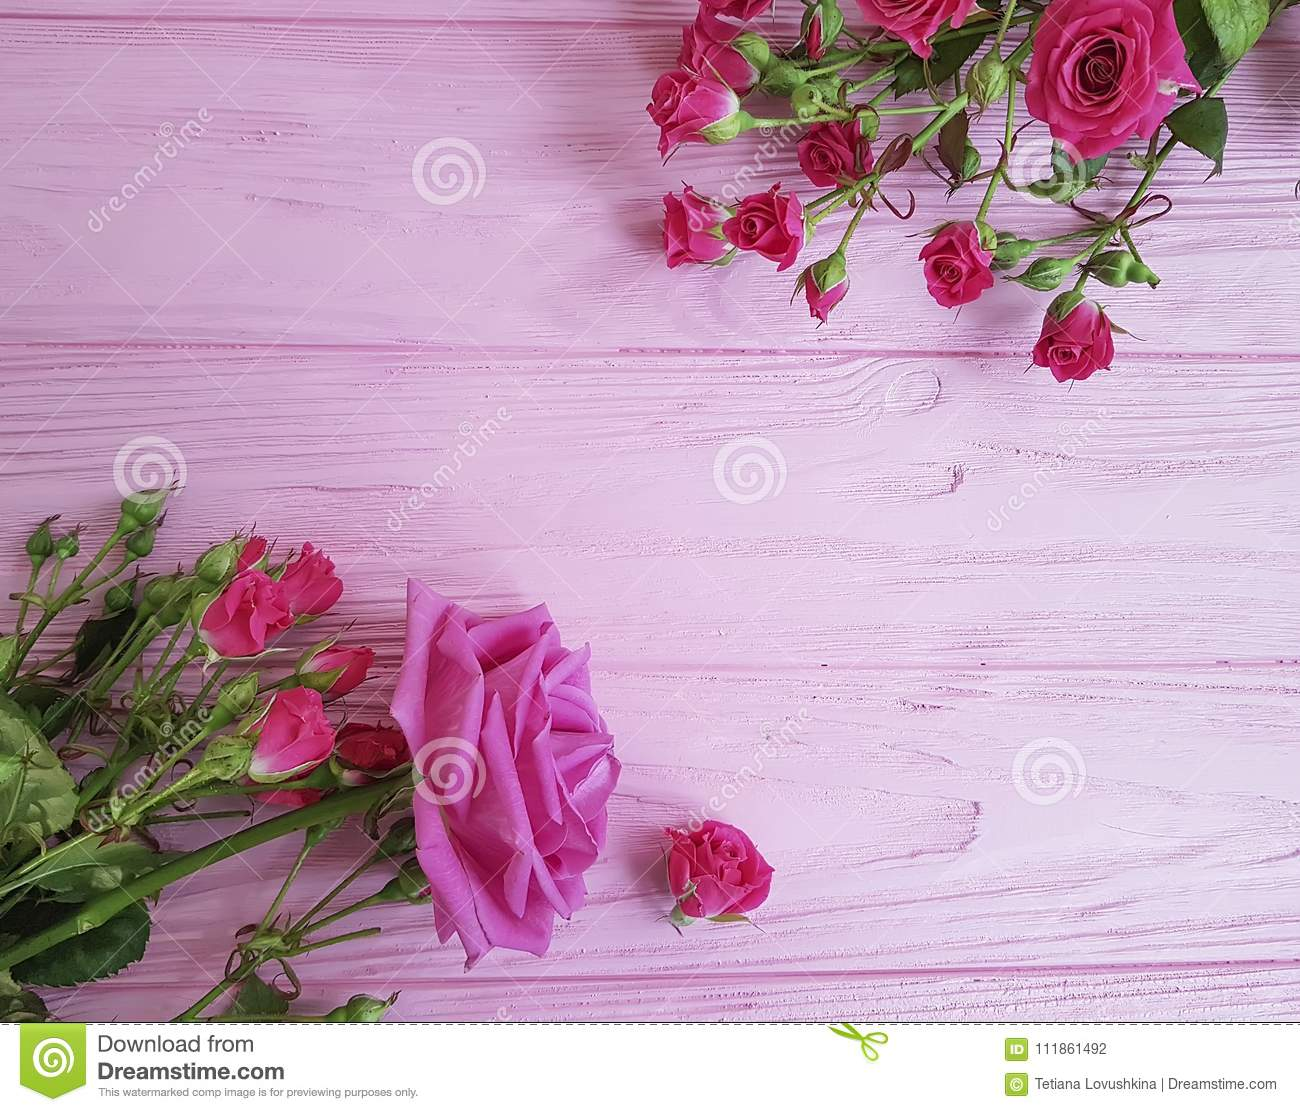 Roses On A Pink Beautiful Greeting Decoration Birthday Wooden Vintage Background Rustic